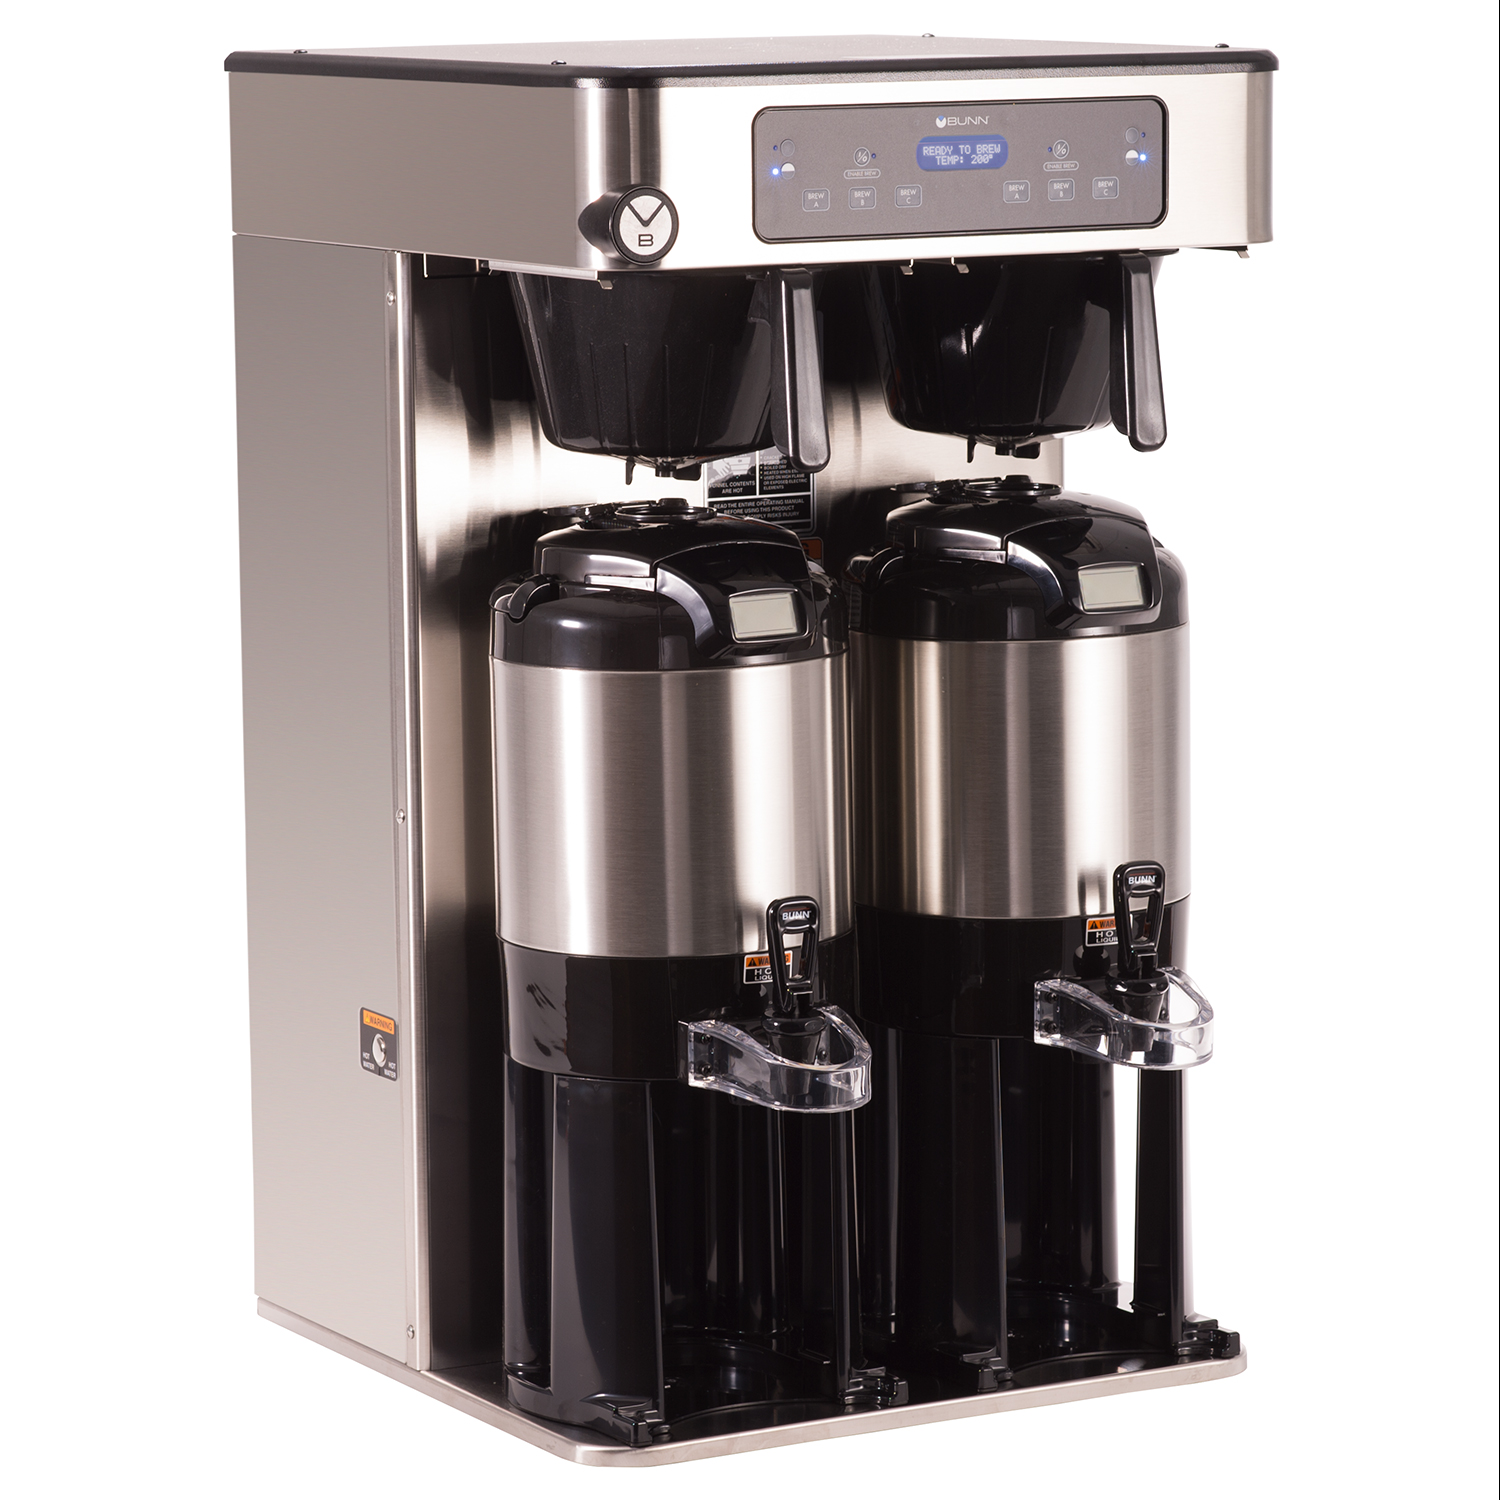 BUNN 53200.0101 coffee brewer for thermal server